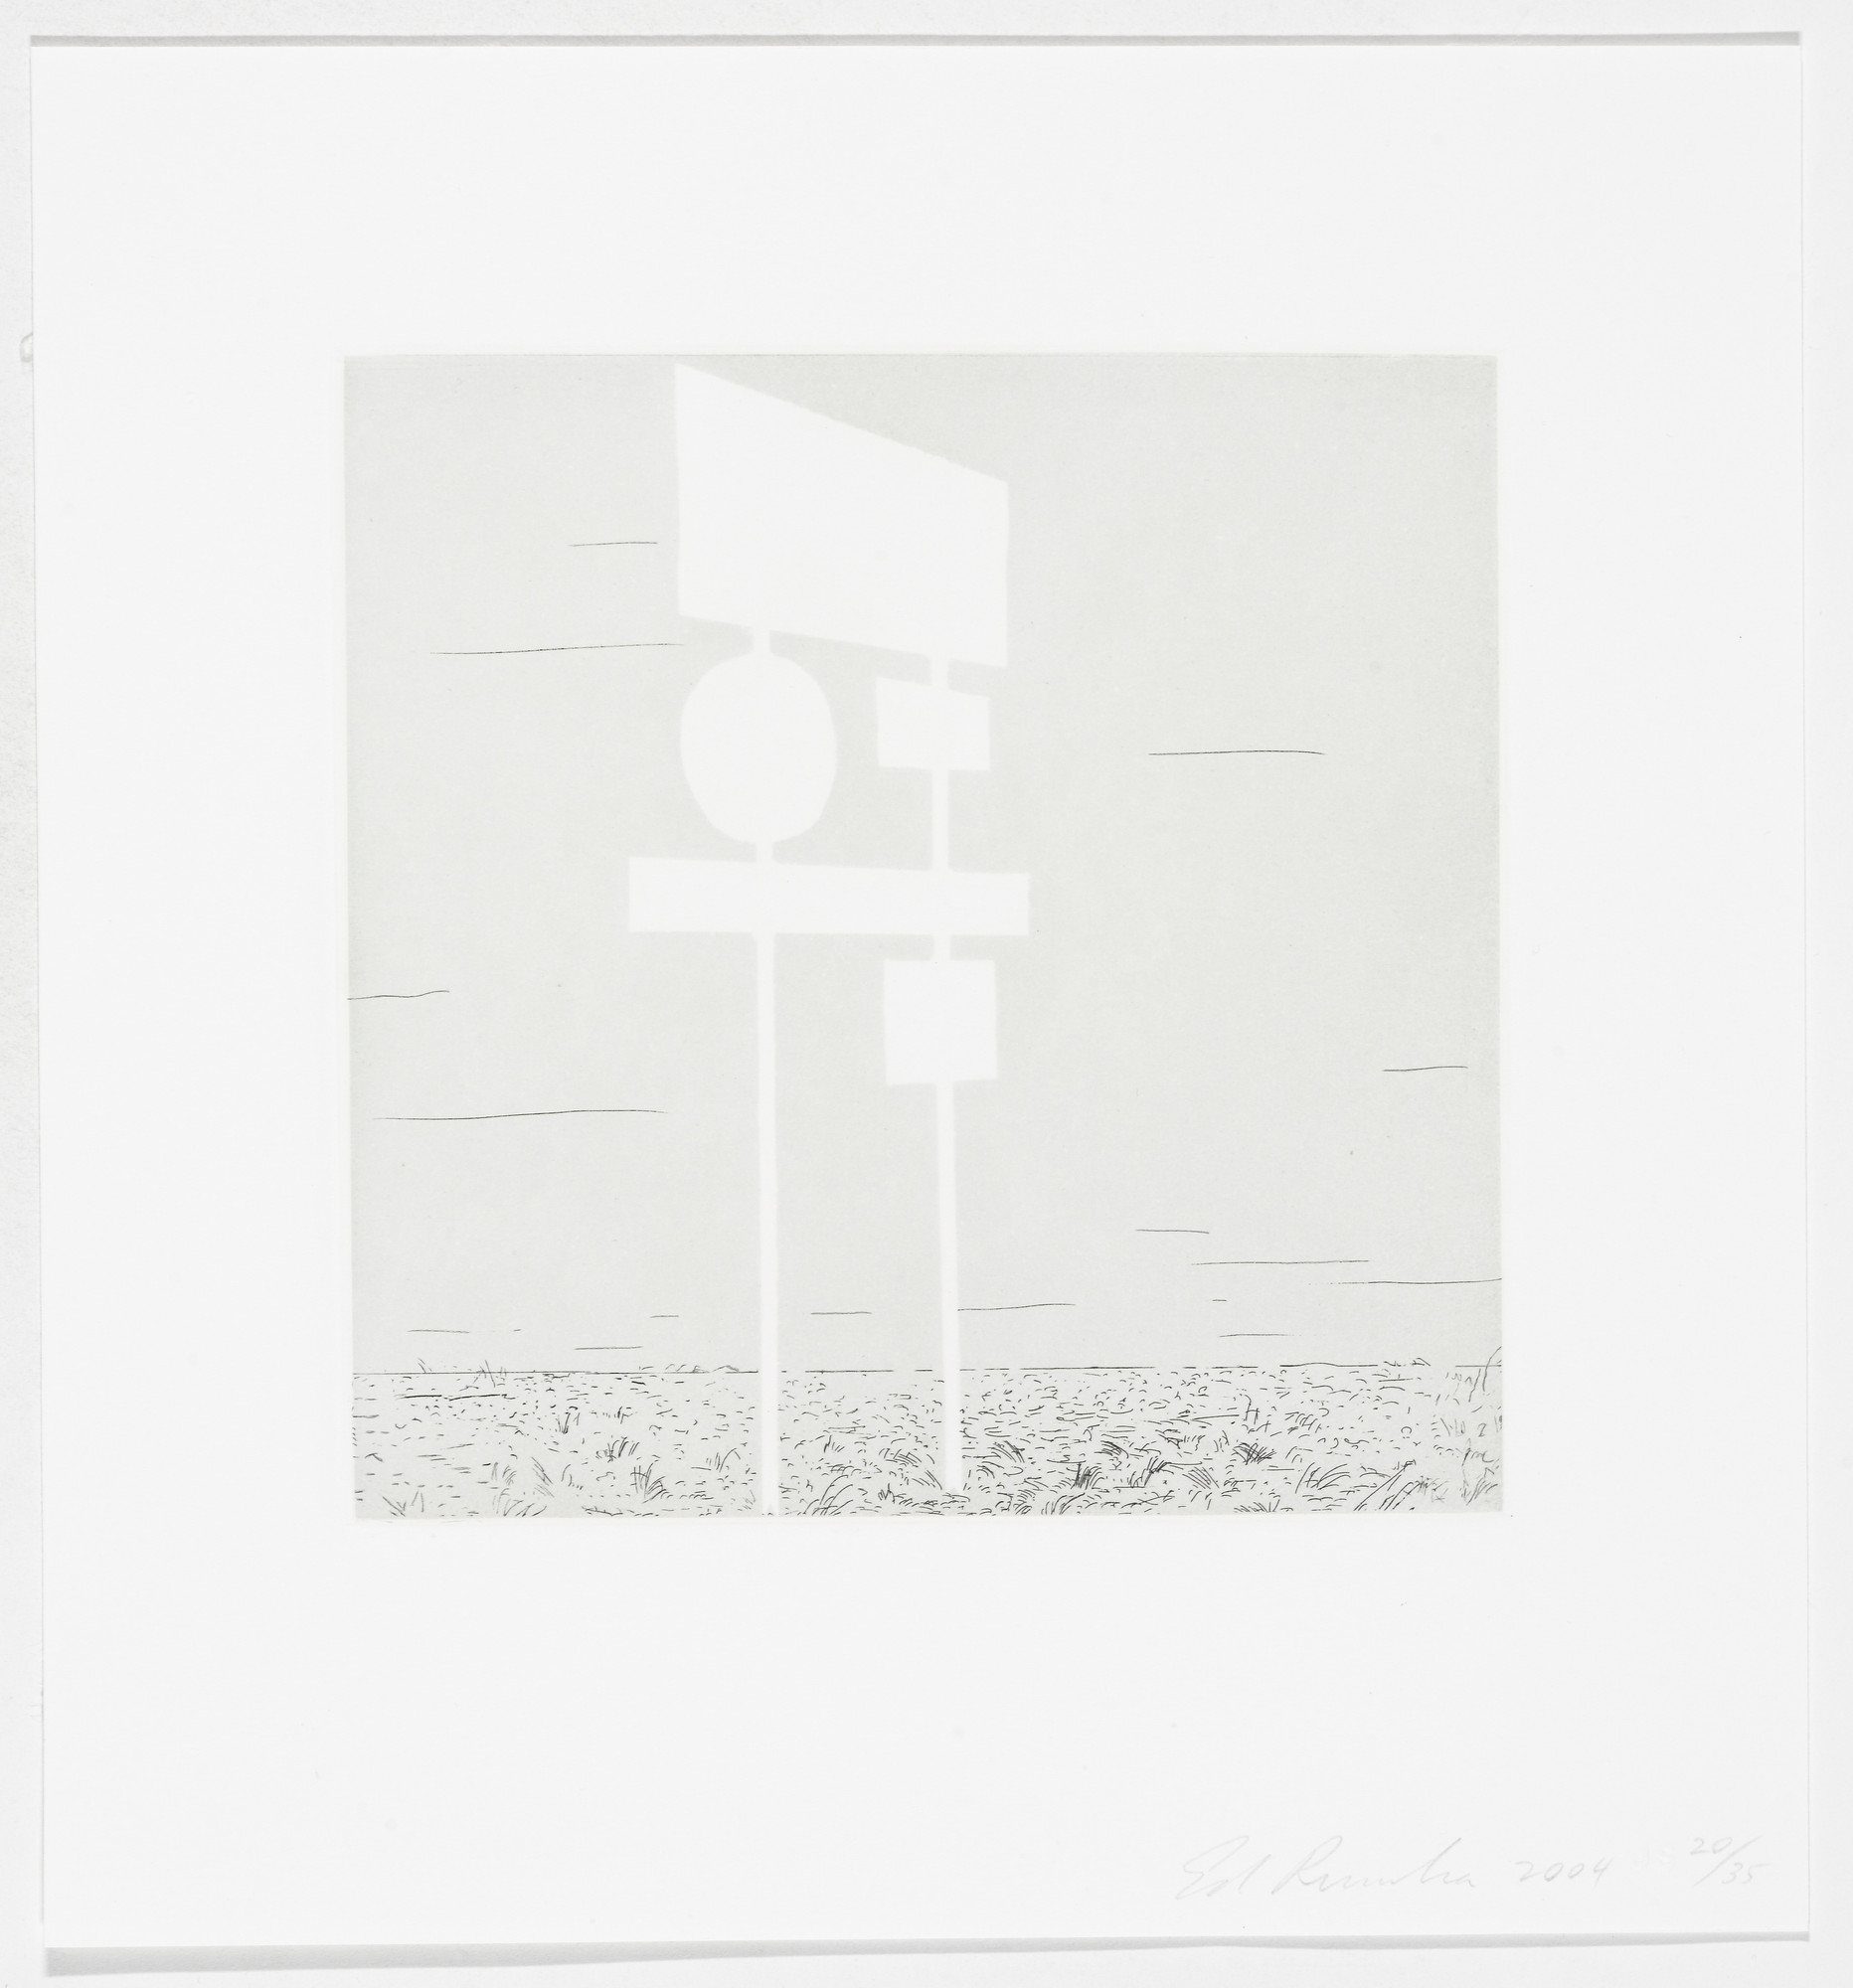 Edward Ruscha. Untitled from Blank Signs. 2004